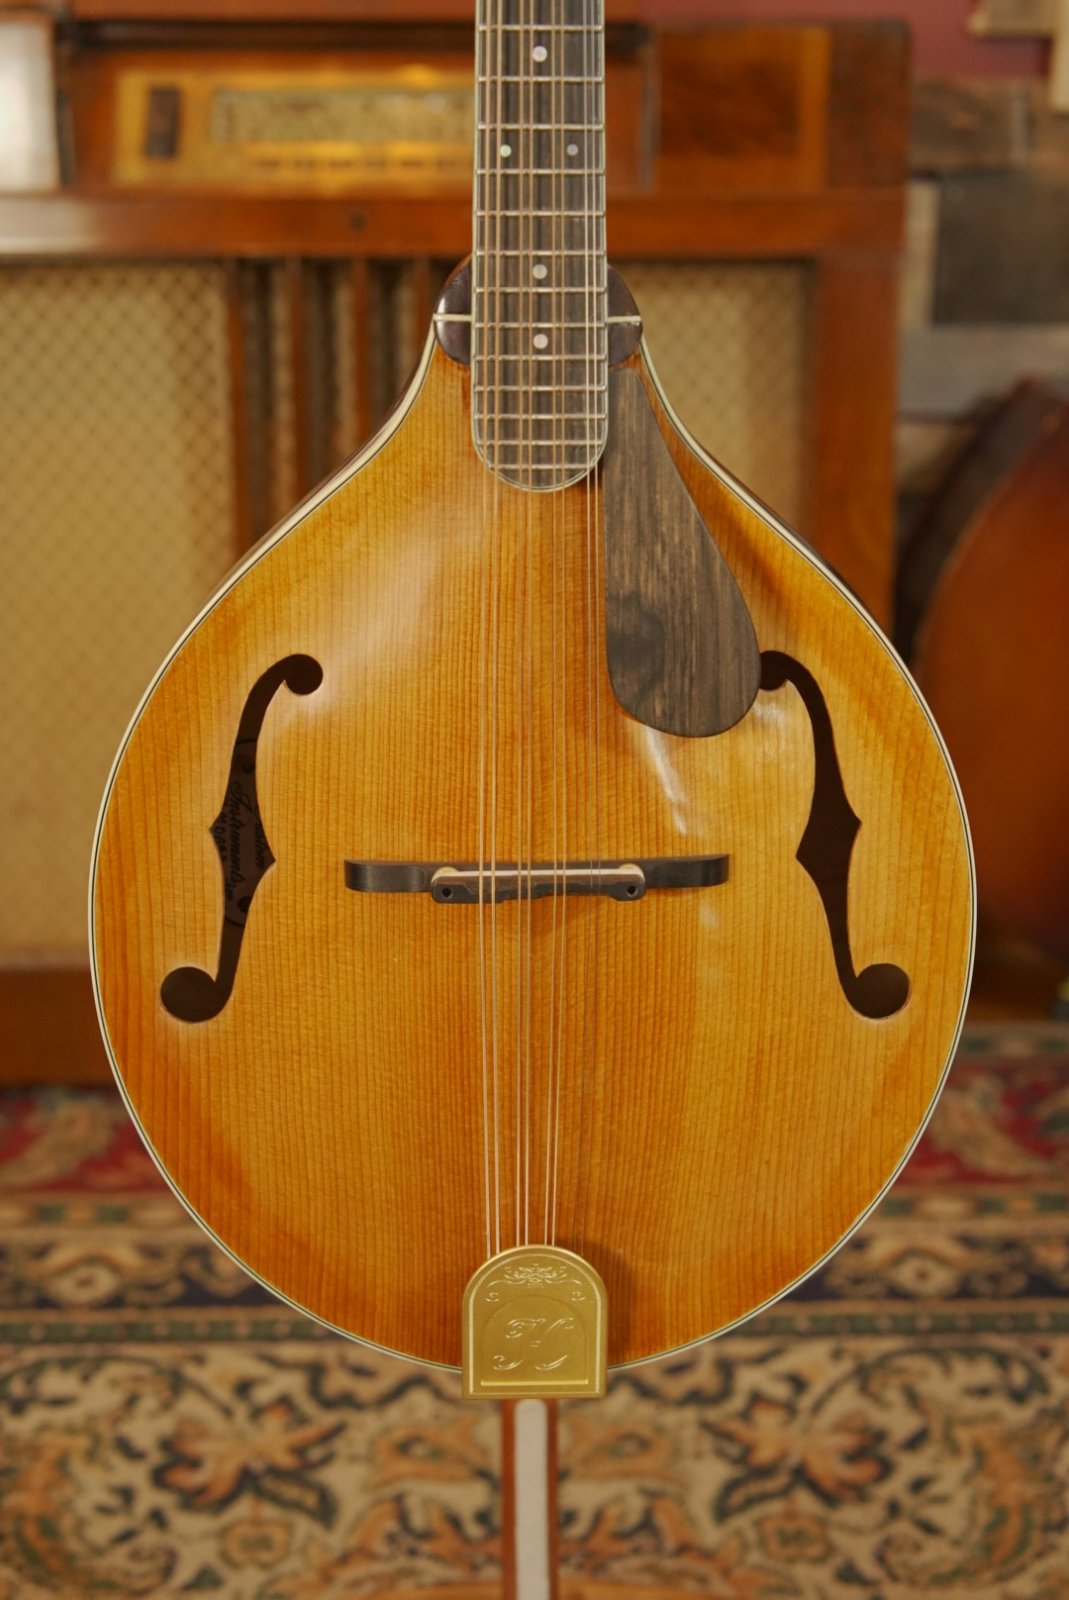 (Floor Model) Hinde MDA #3 Mandola w/ Torrefied Adirondack Top & Quilted Maple Back/Sides